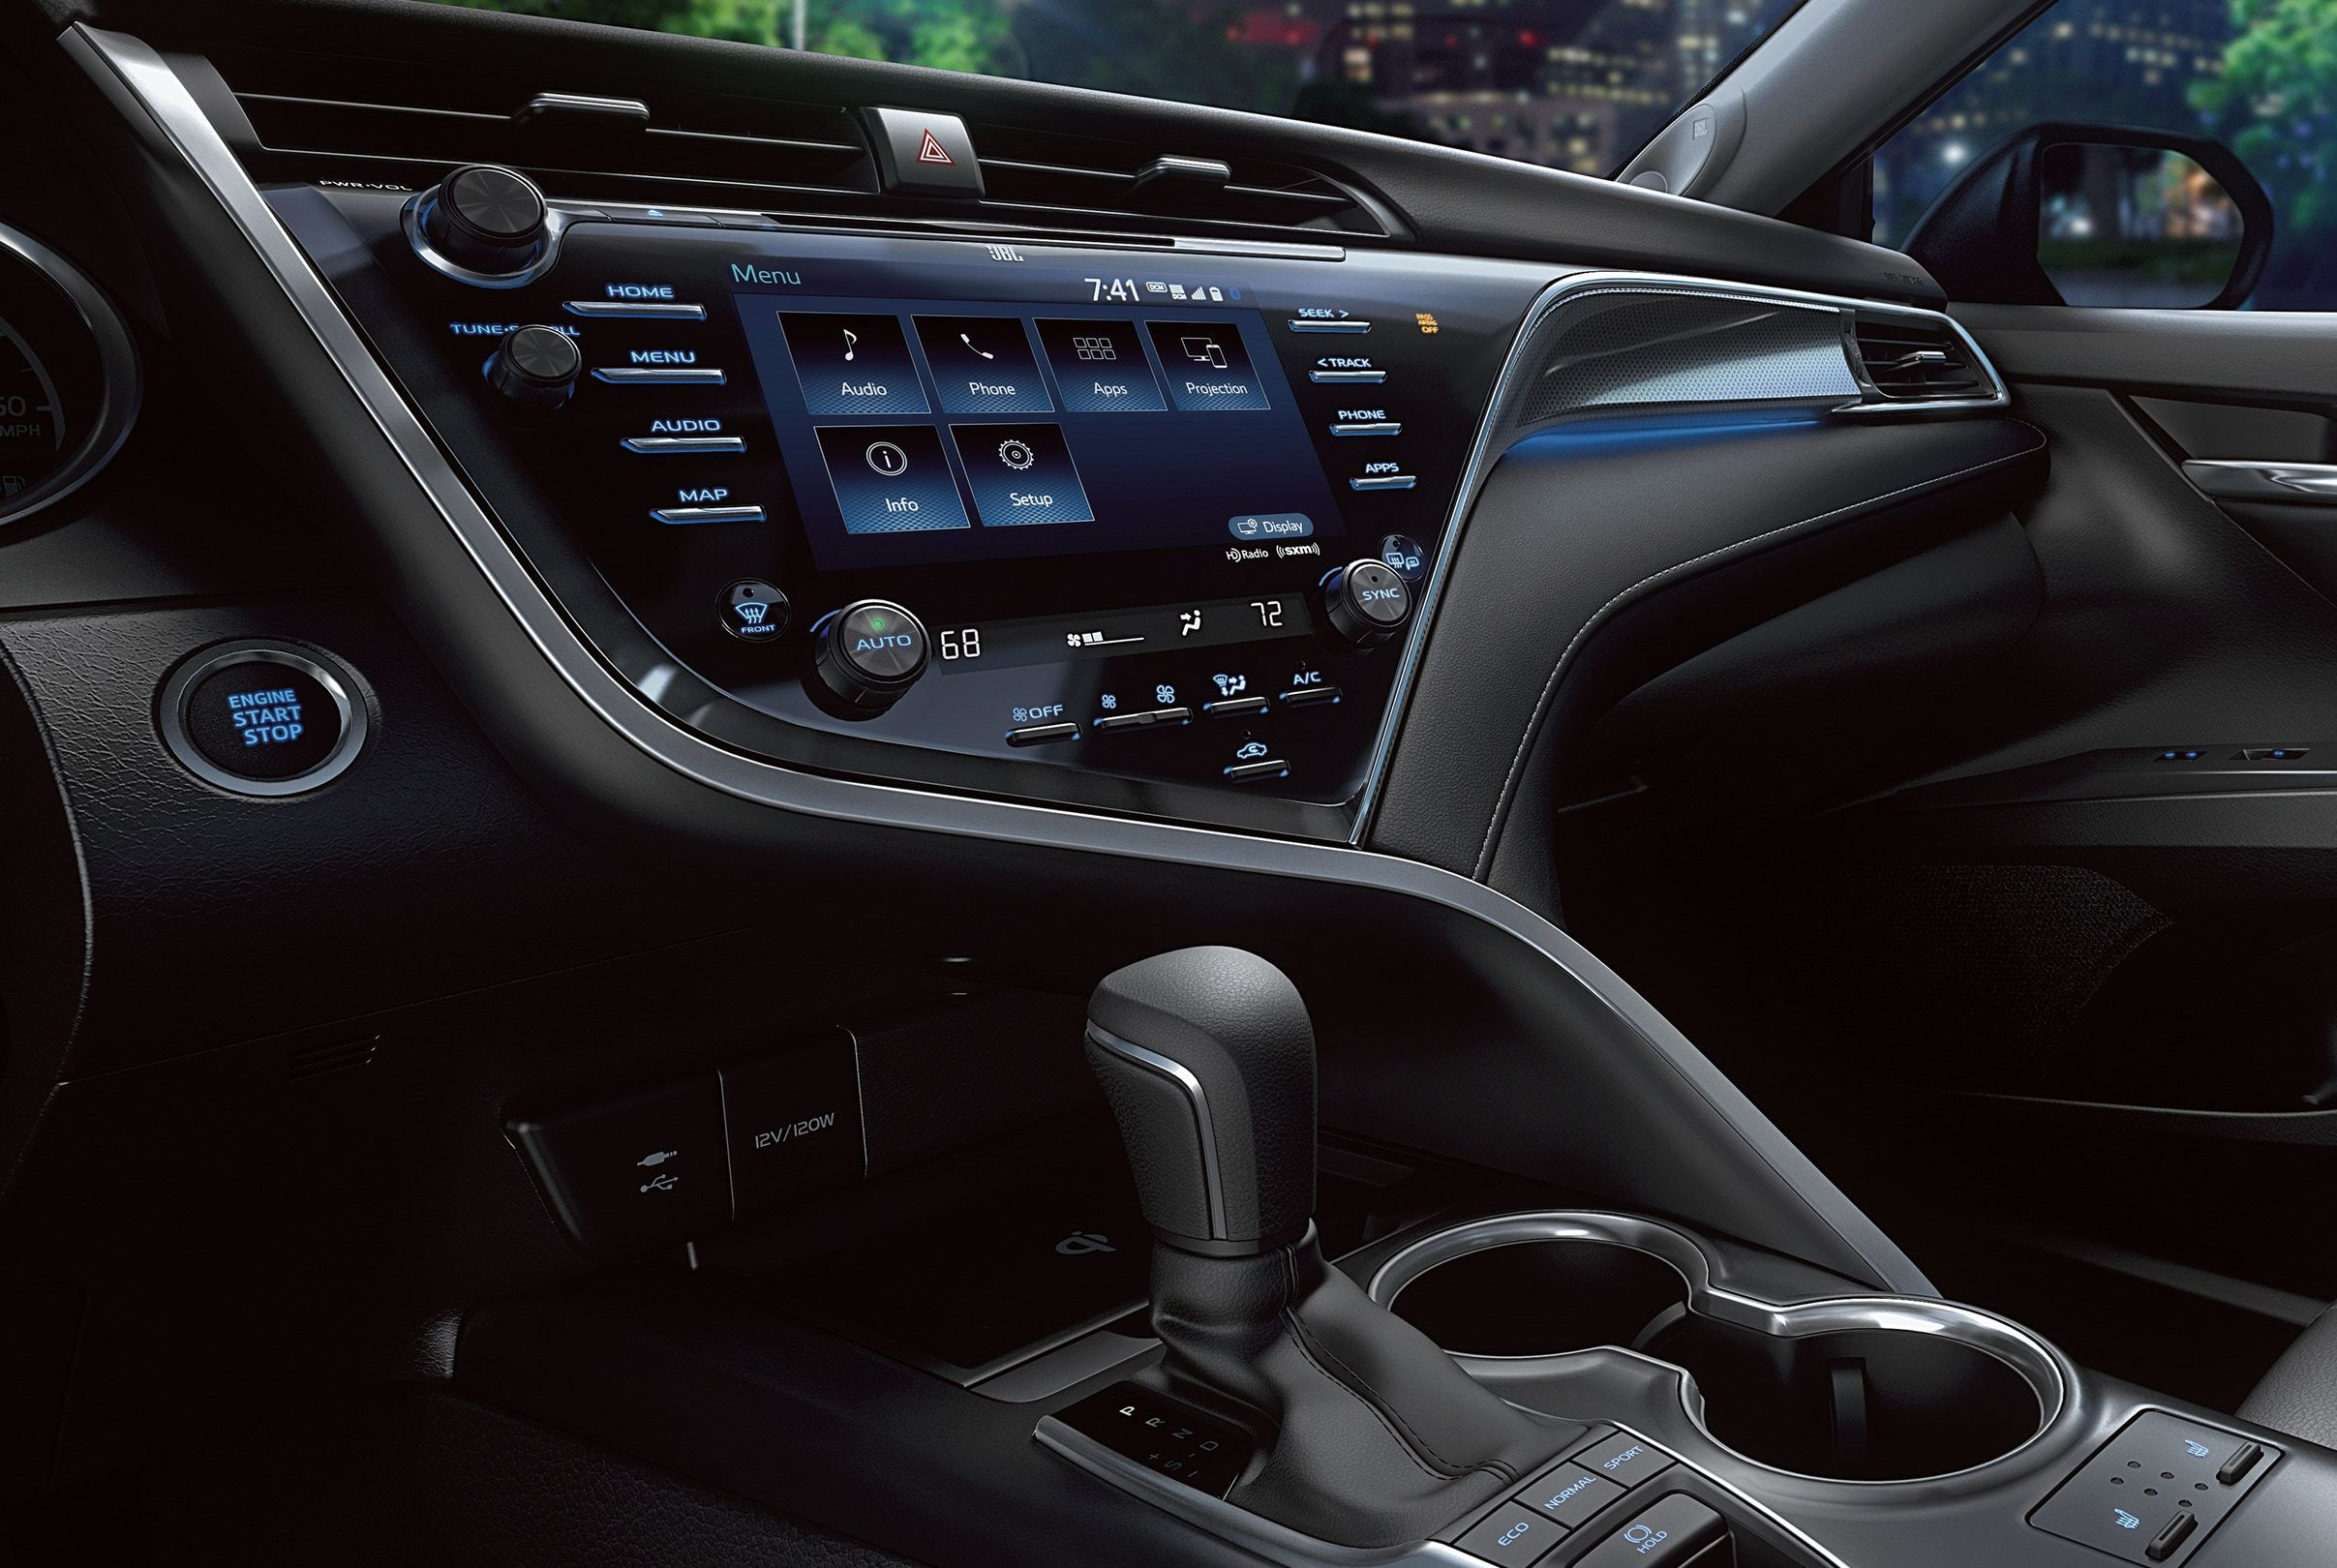 The Tech-Loaded Interior of the 2020 Camry